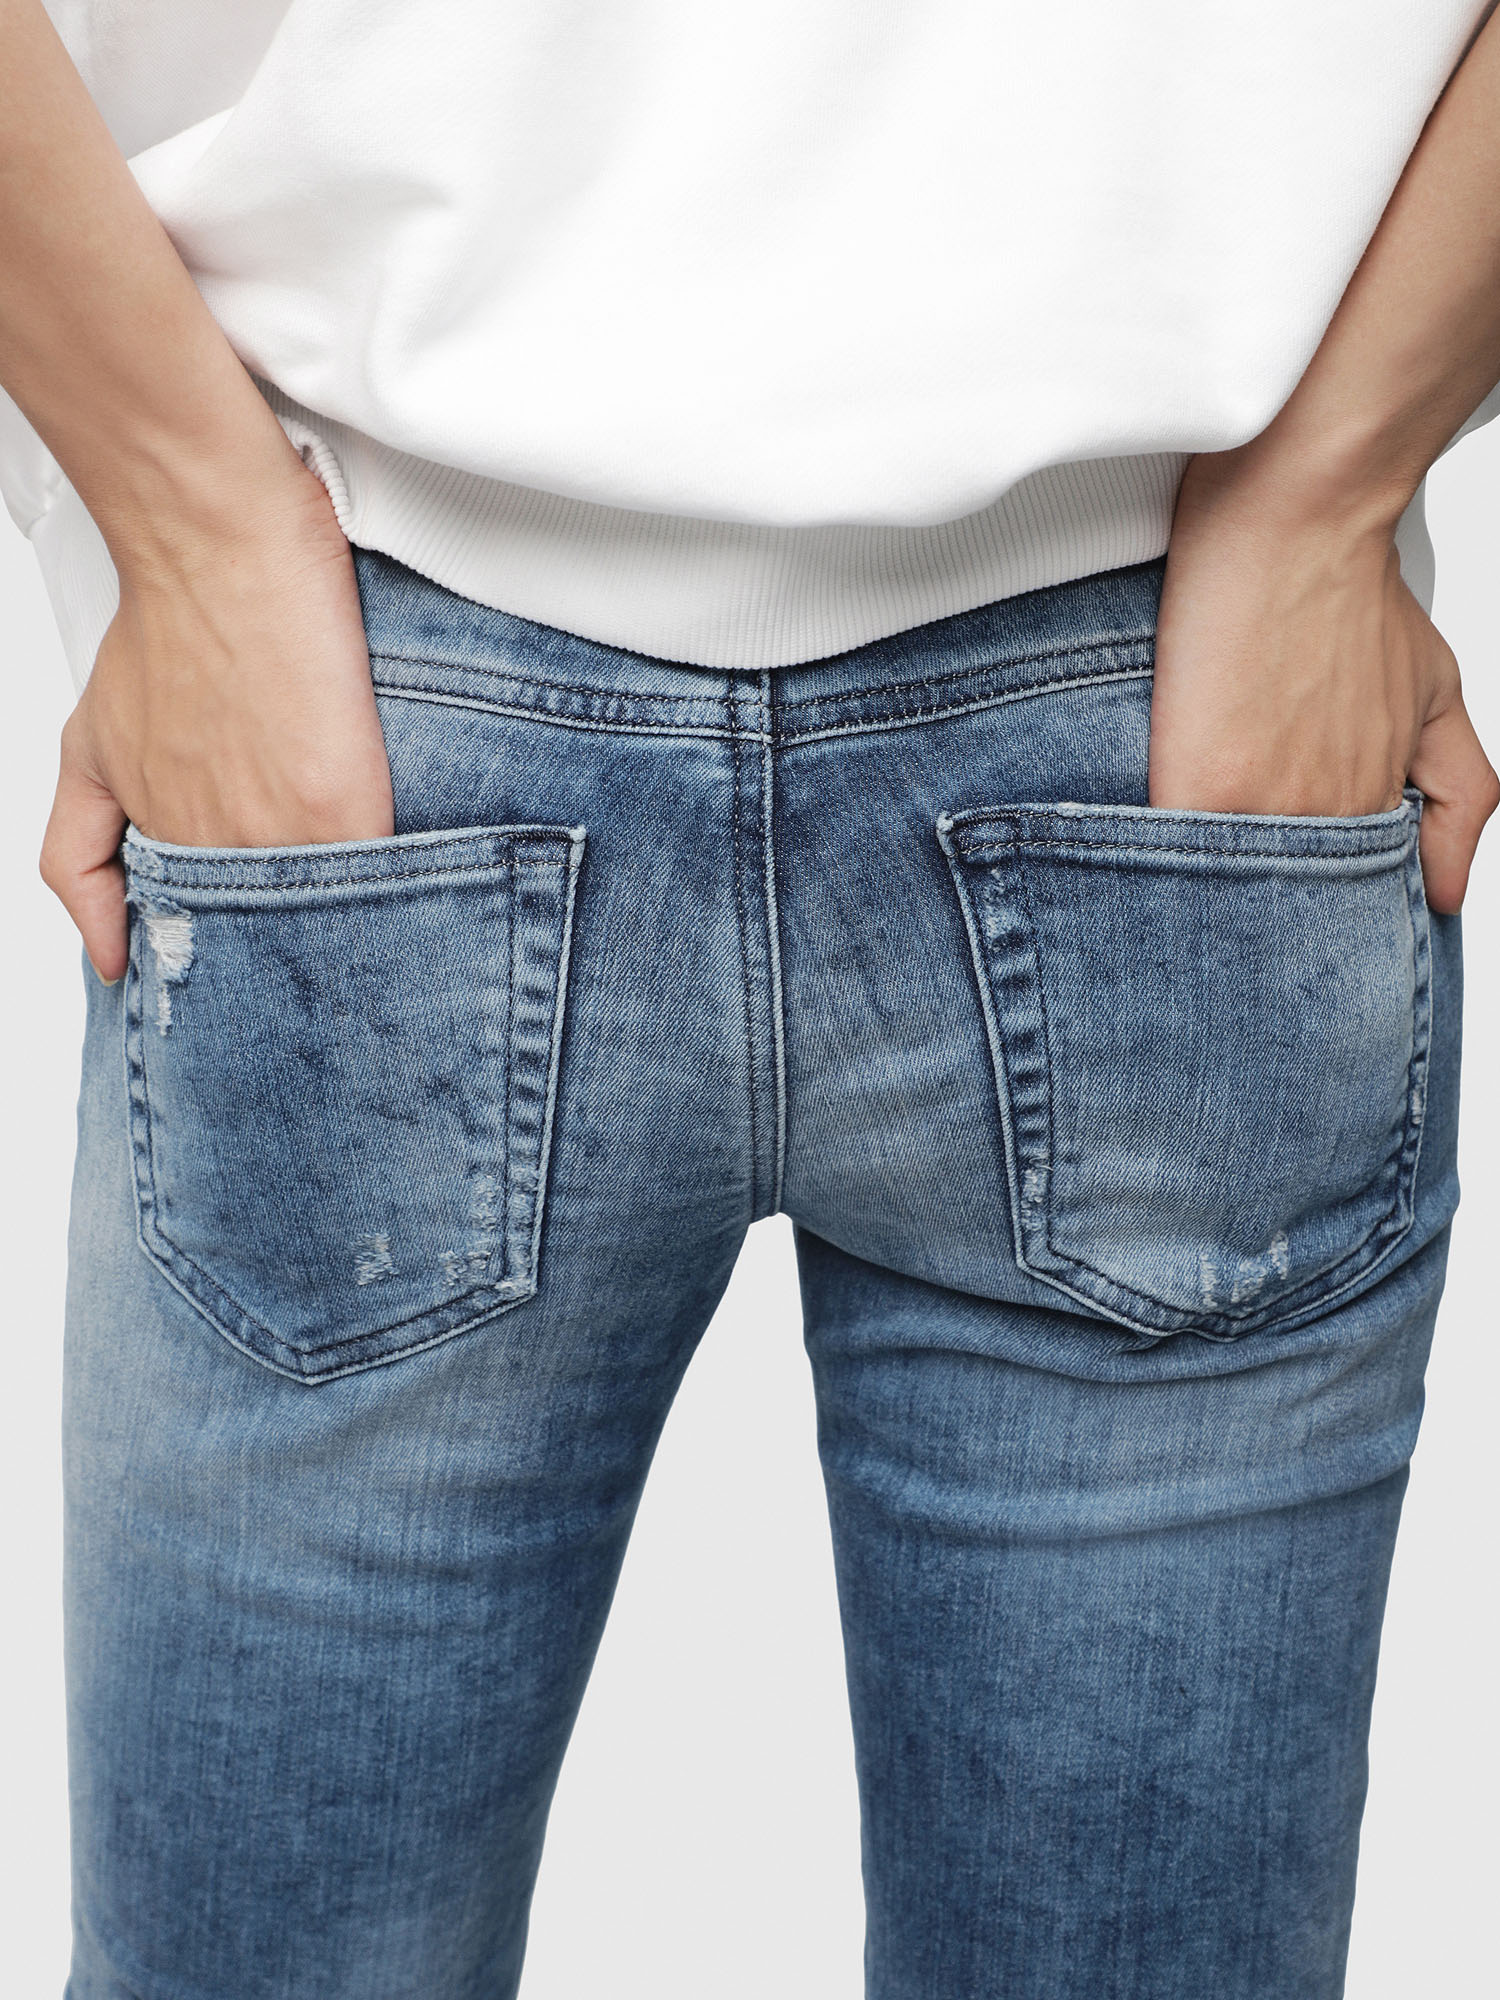 Diesel - Gracey JoggJeans 080AS,  - Jeans - Image 3